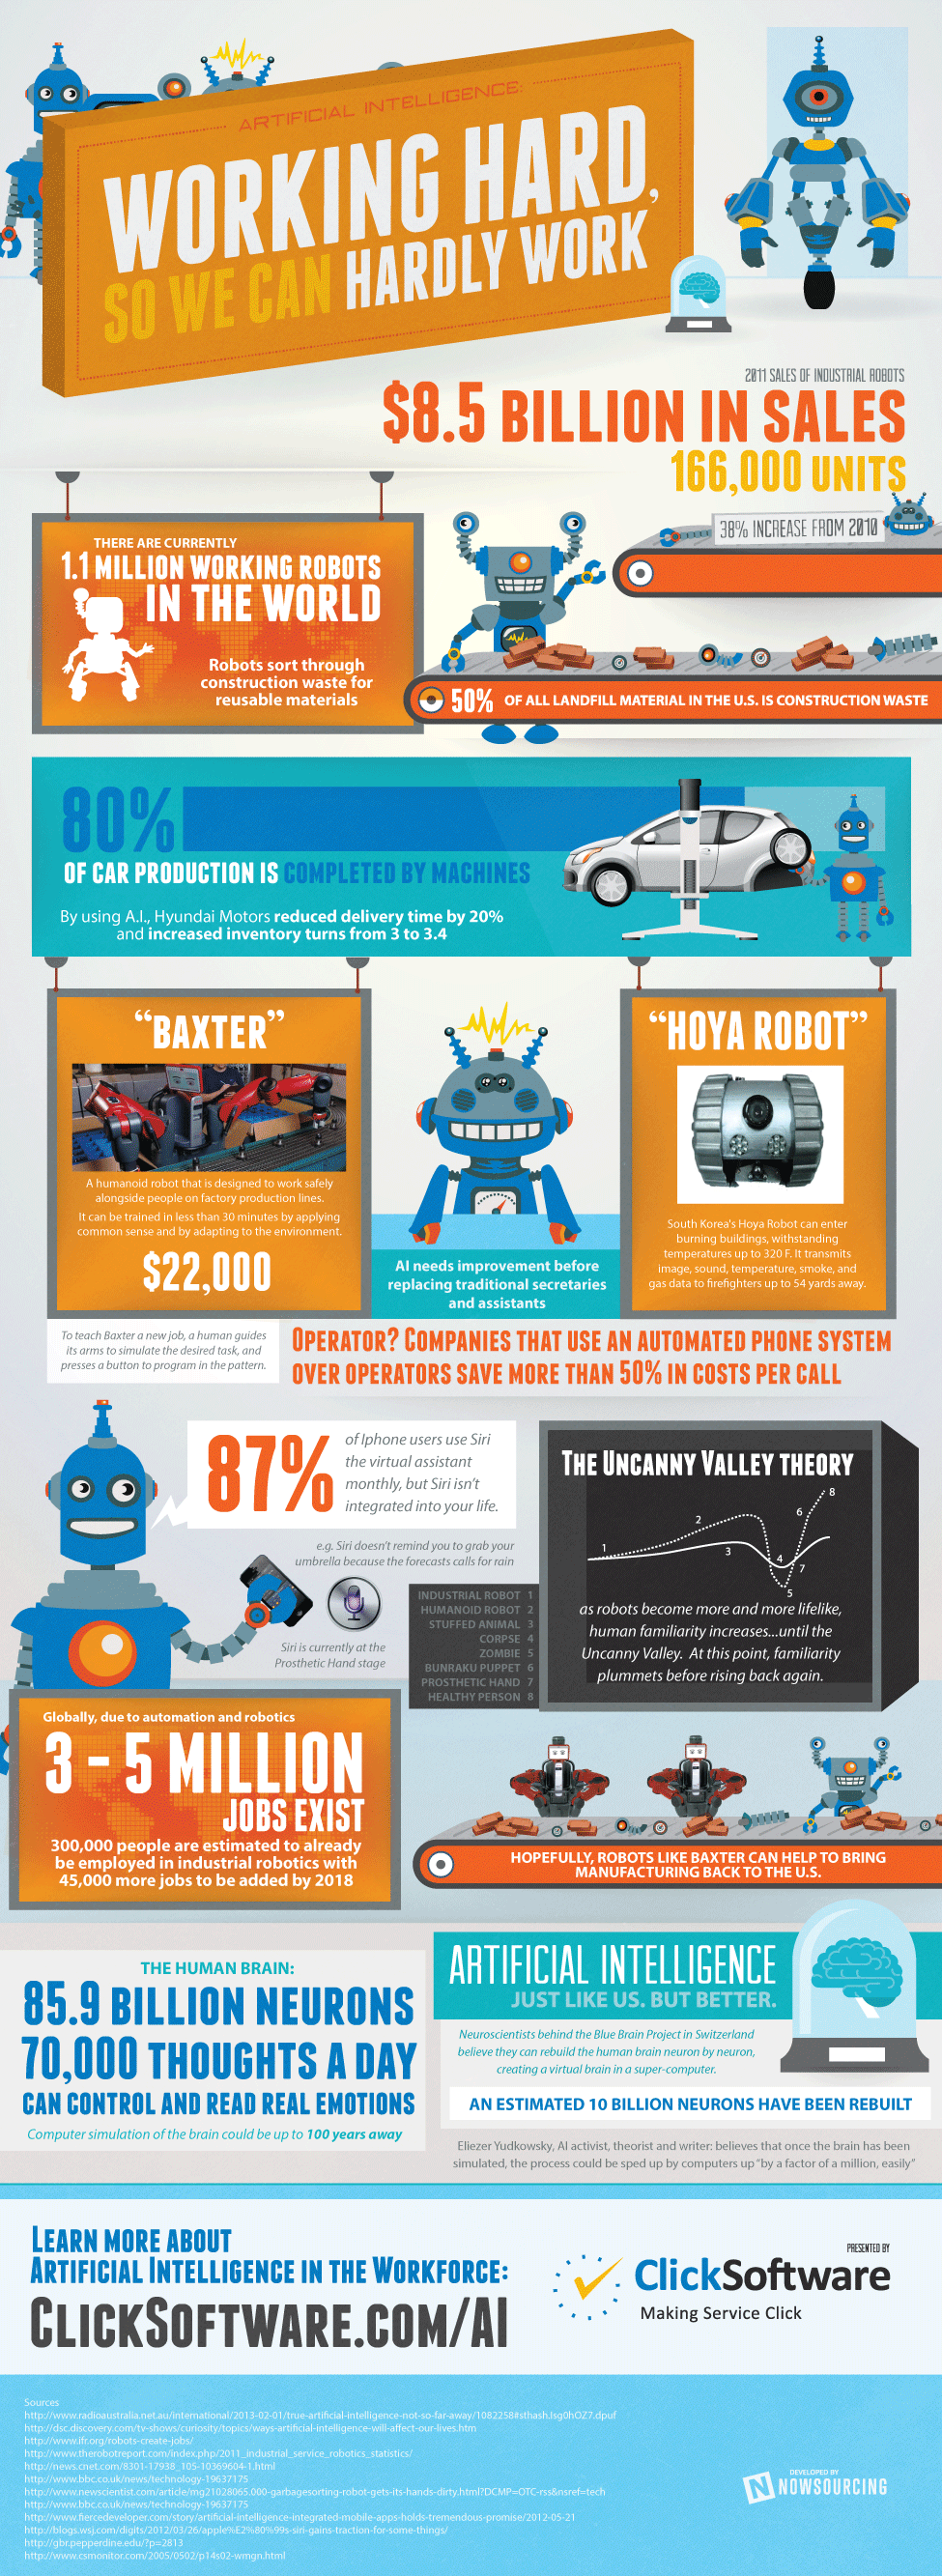 Artificial Intelligence state-of-artificial-intelligence-infographic